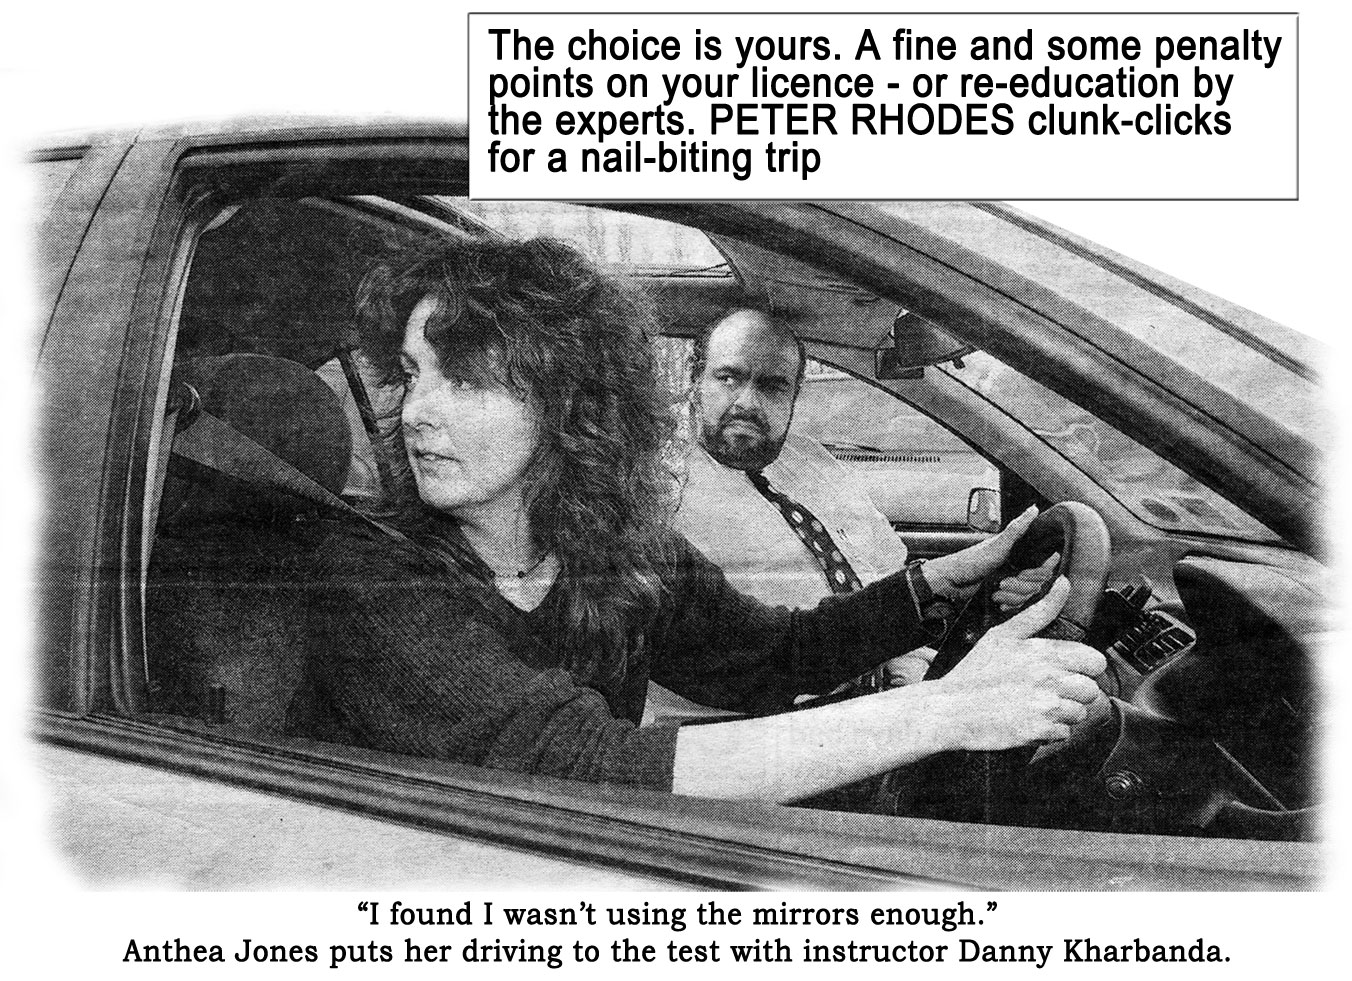 """I found I wasn't using the mirrors enough."" Anthea Jones puts her driving to the test with instructor Danny Kharbanda."